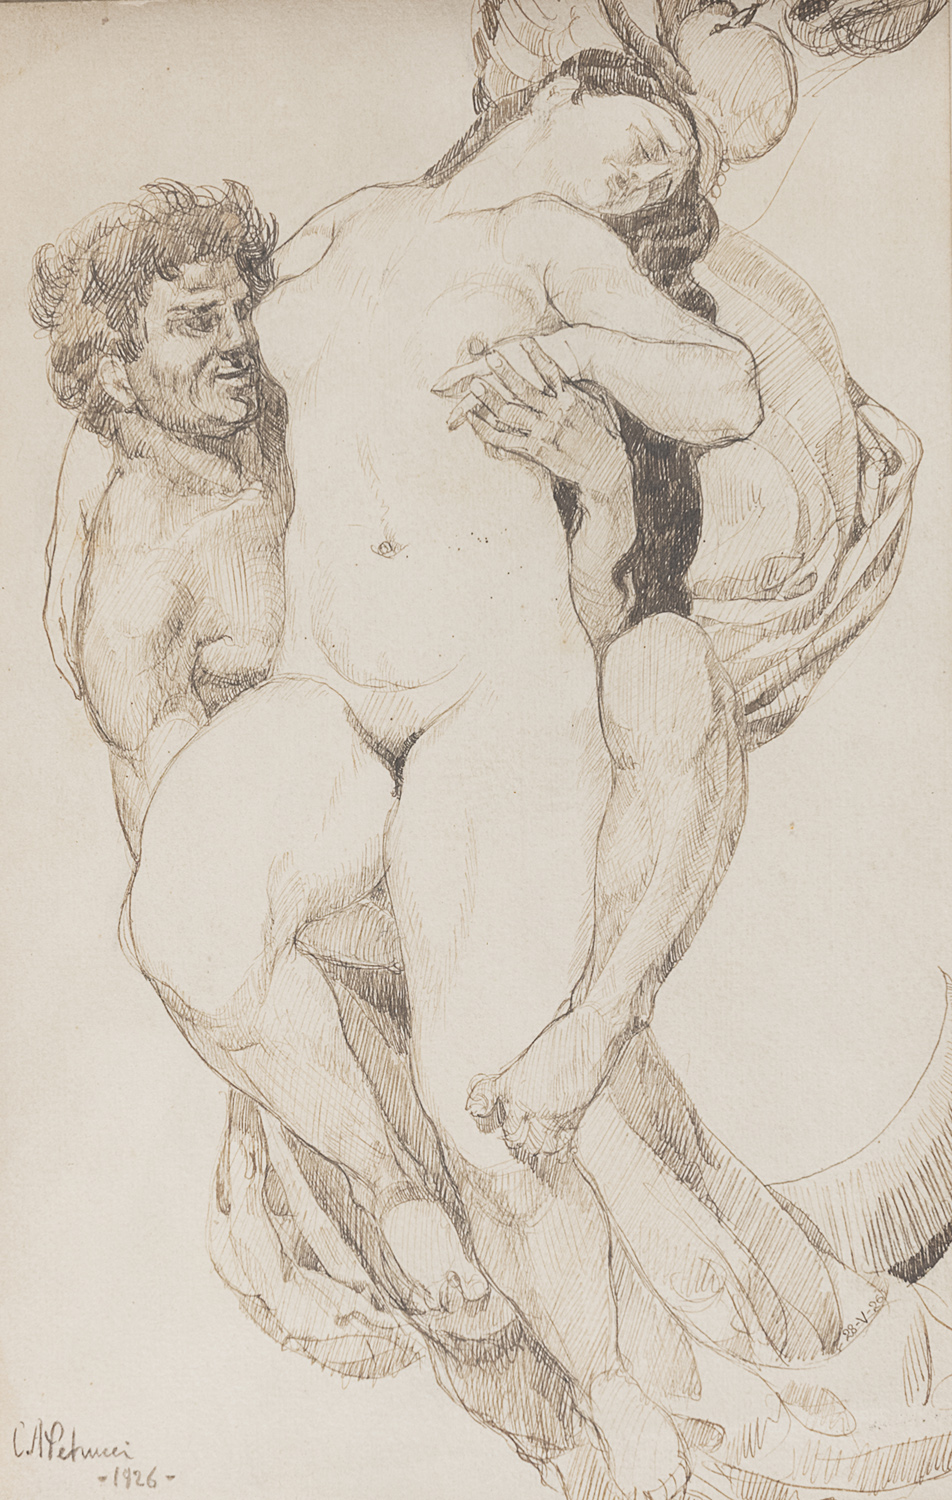 PAIR OF INK DRAWINGS BY CARLO ALBERTO PETRUCCI 19TH.20TH CENTURY - Image 2 of 2